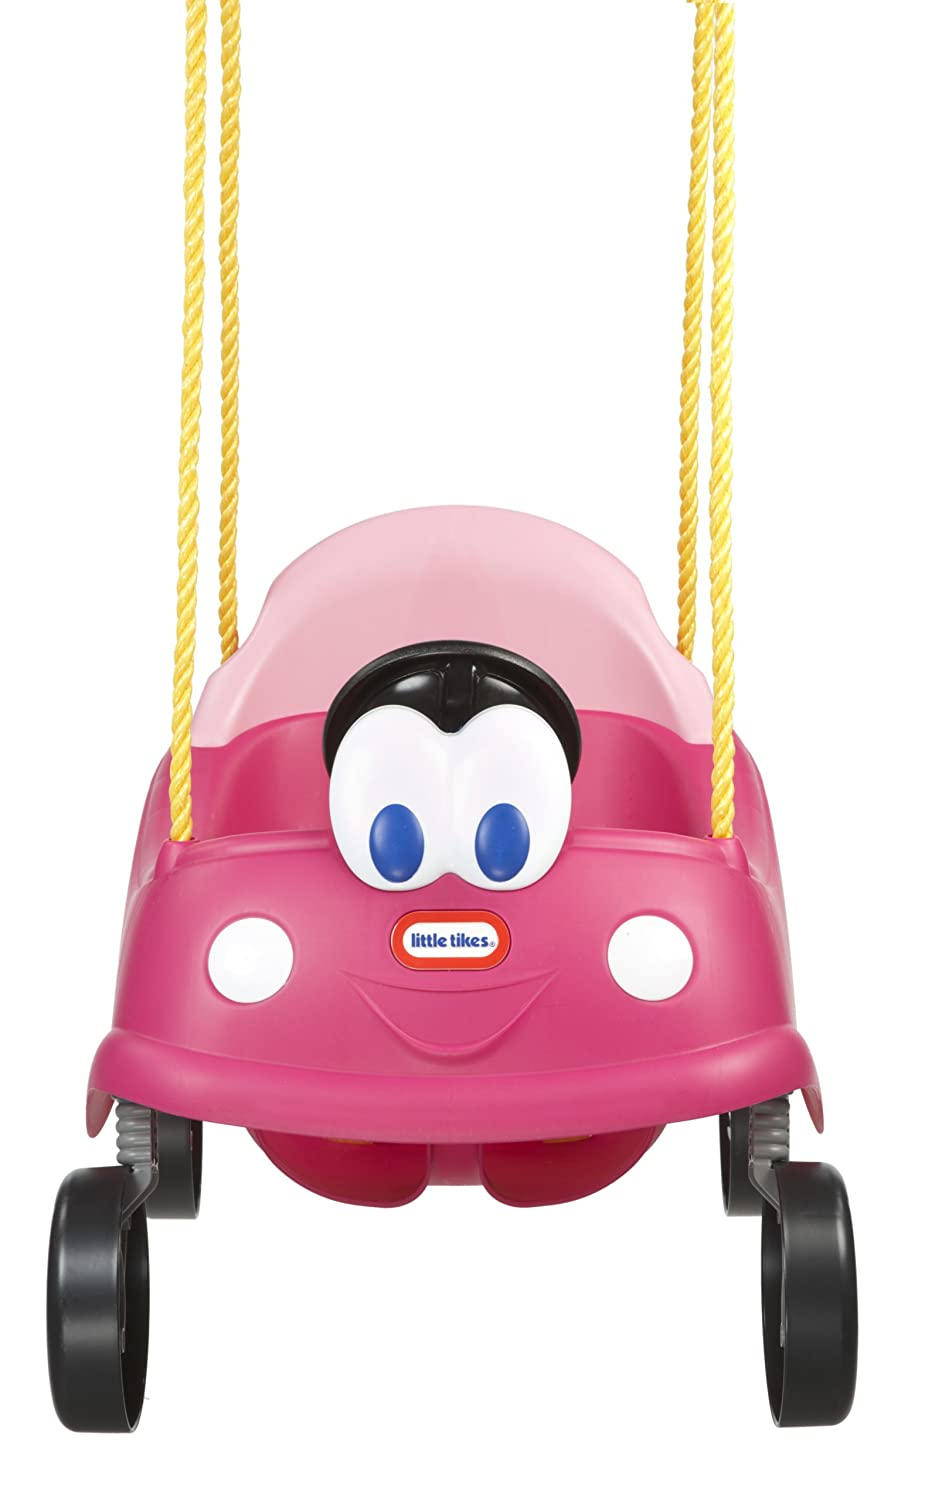 Little Tikes Princess Cozy Coupe First Swing 635243M